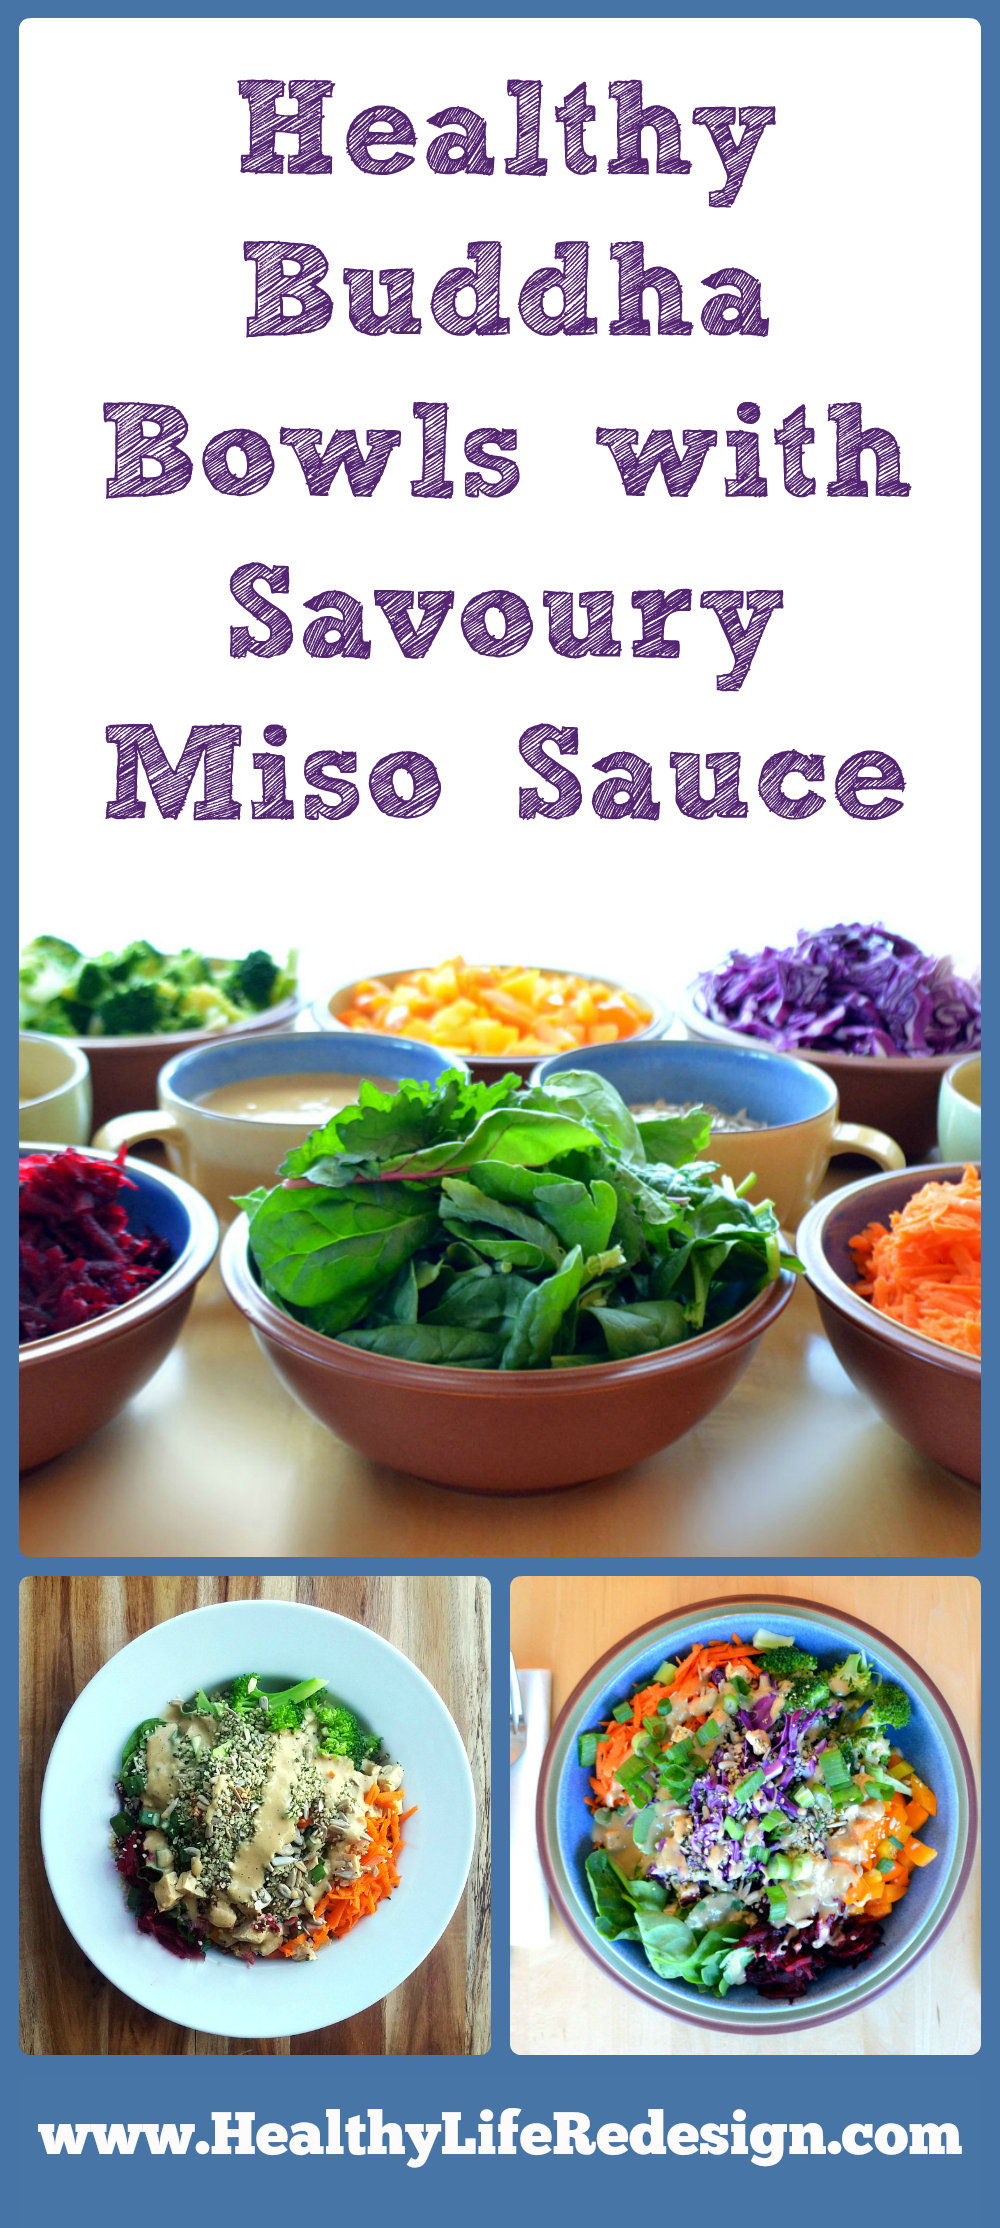 Healthy Buddha Bowl with Savoury Miso Sauce. Easy packed lunch or healthy dinner recipe! Gluten-free, vegan and delicious!